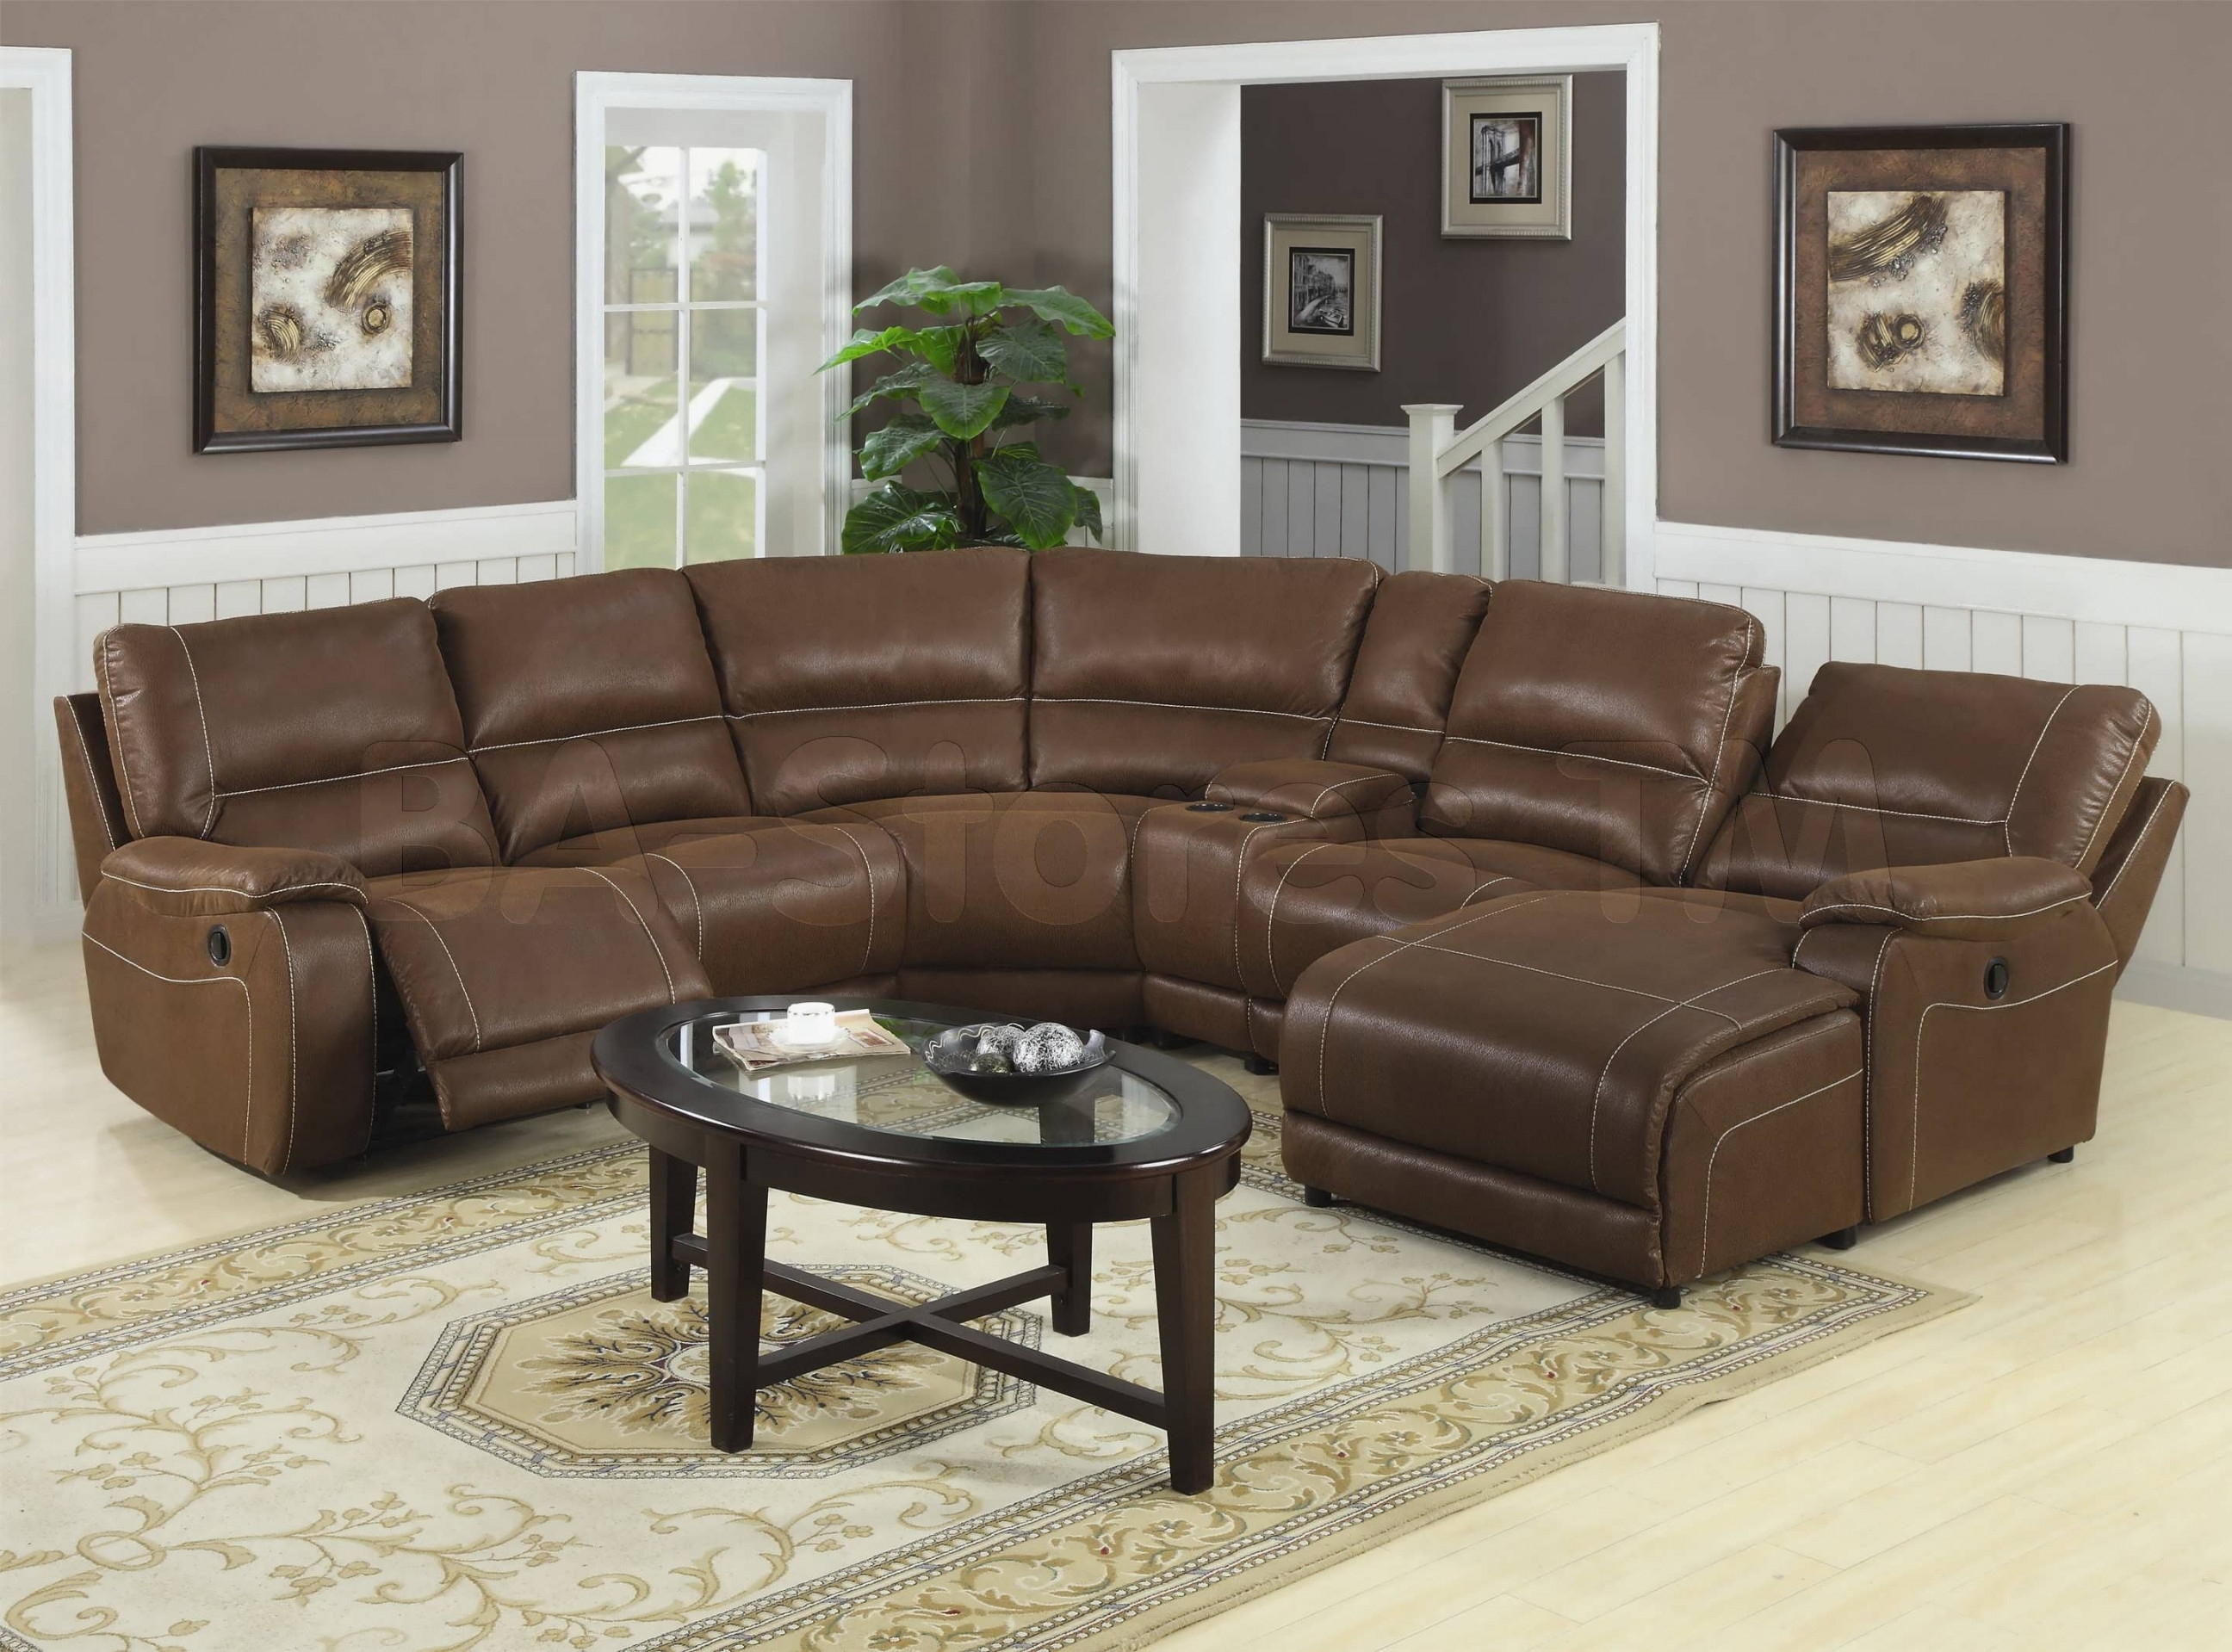 Sofa : Fold Out Couch Sectional Sofas With Recliners Sectional With Regard To Sectional Sofas With Recliners (Image 9 of 10)